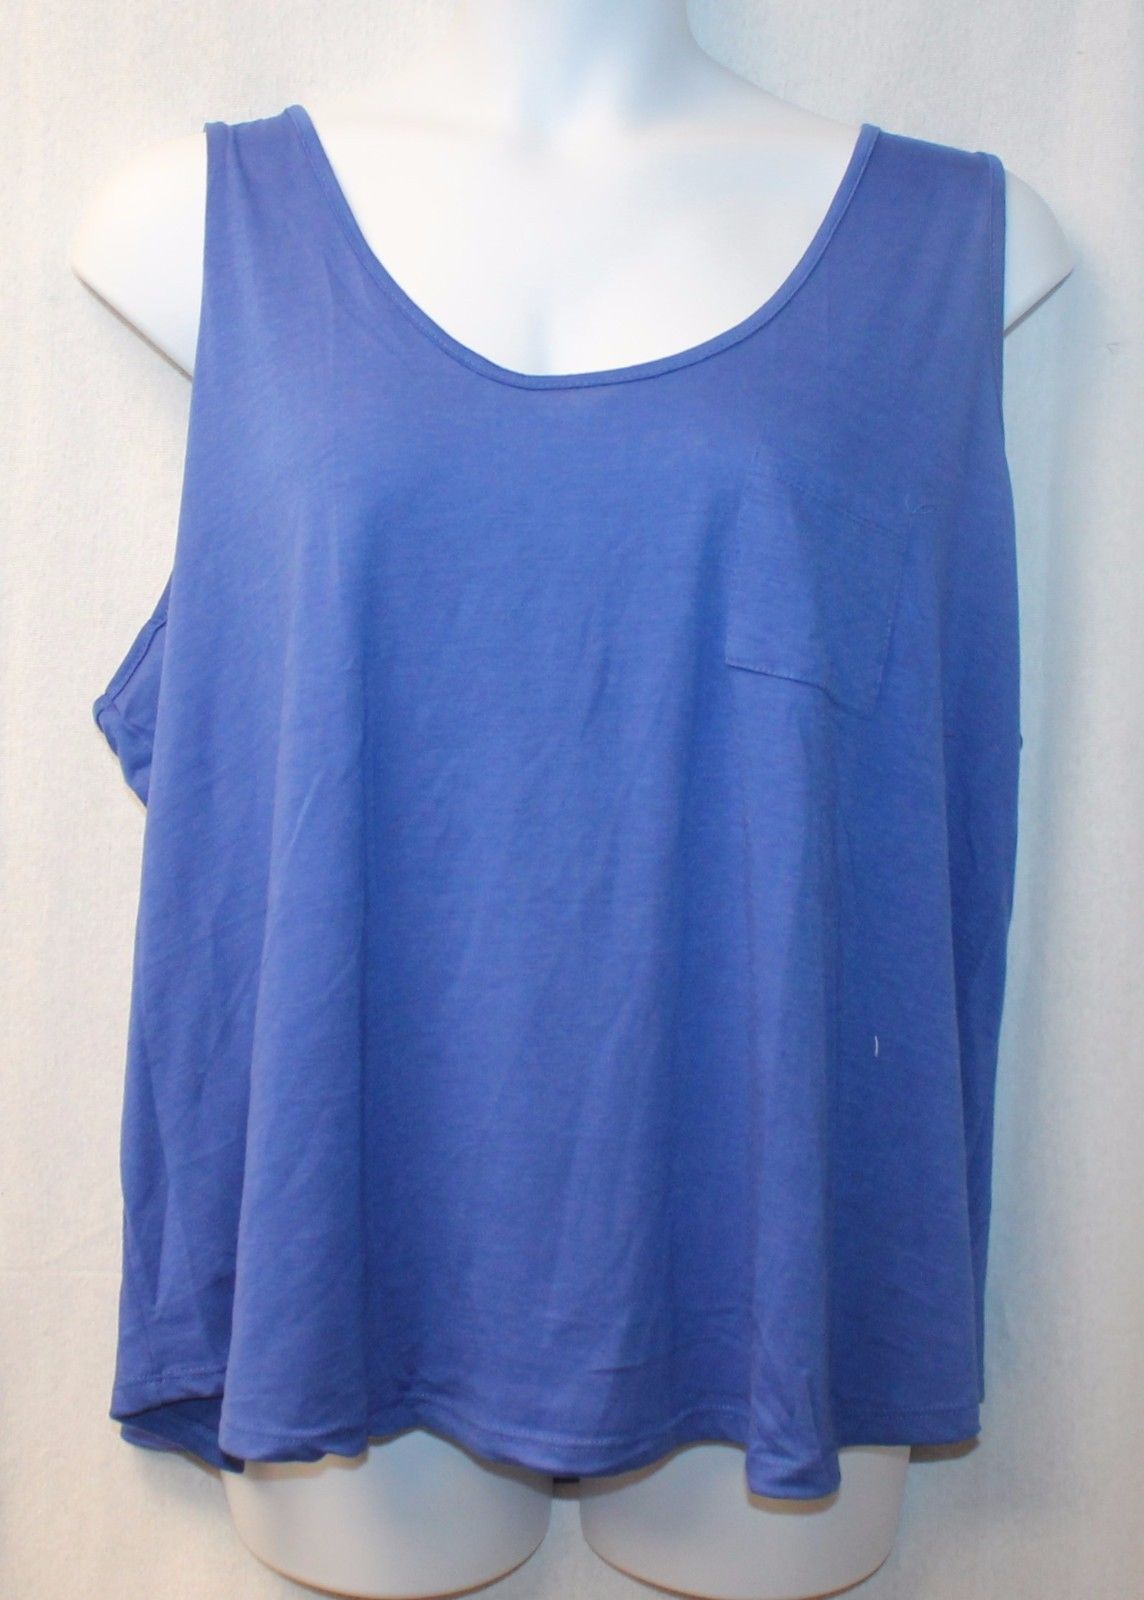 COOL NEW WOMENS PLUS SIZE 3X PRETTY BRIGHT BLUE ZIP UP ZIPPERED BACK TANK TOP - $13.54